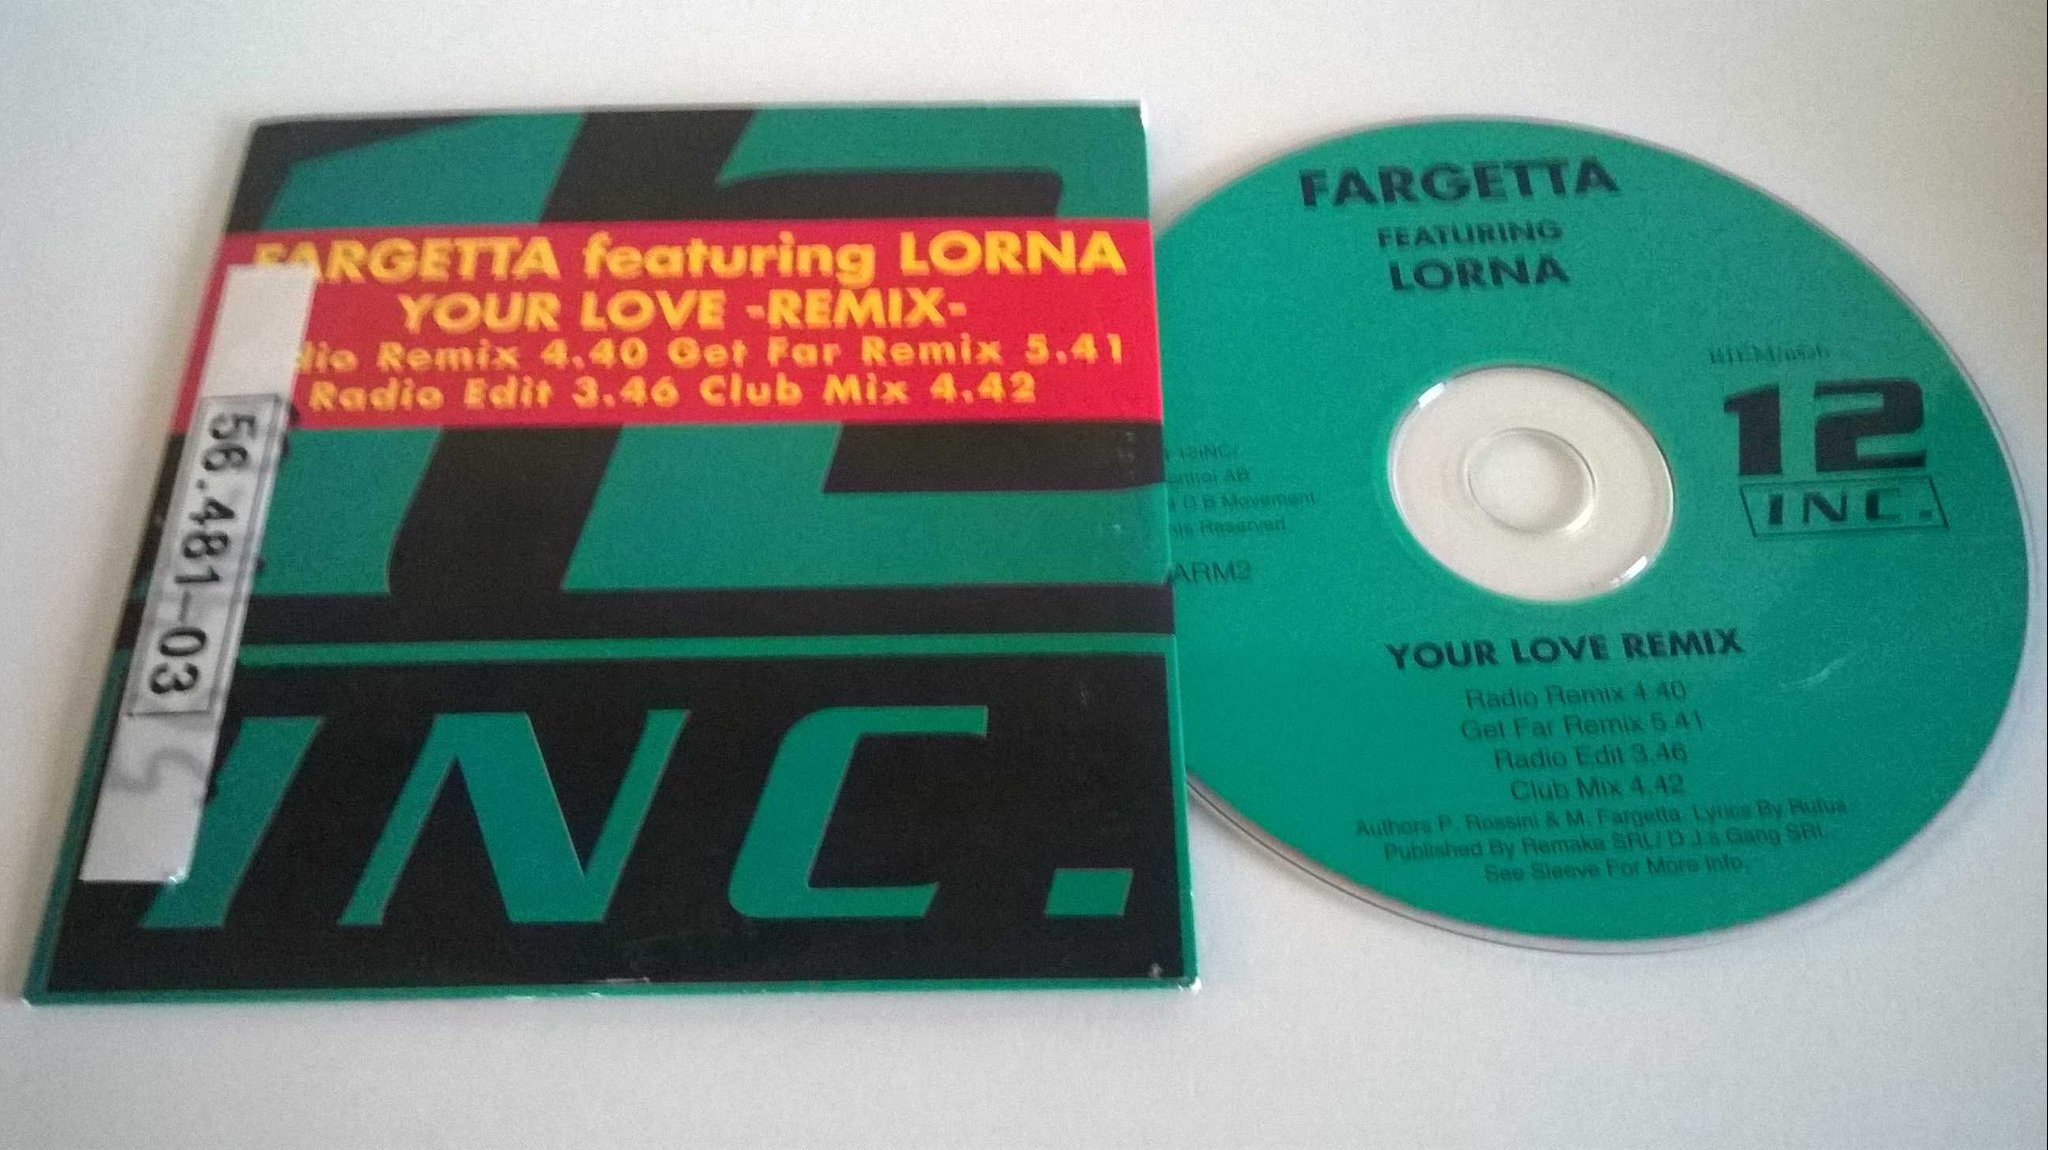 Fargetta featuring Lorna - Your love remix, single CD